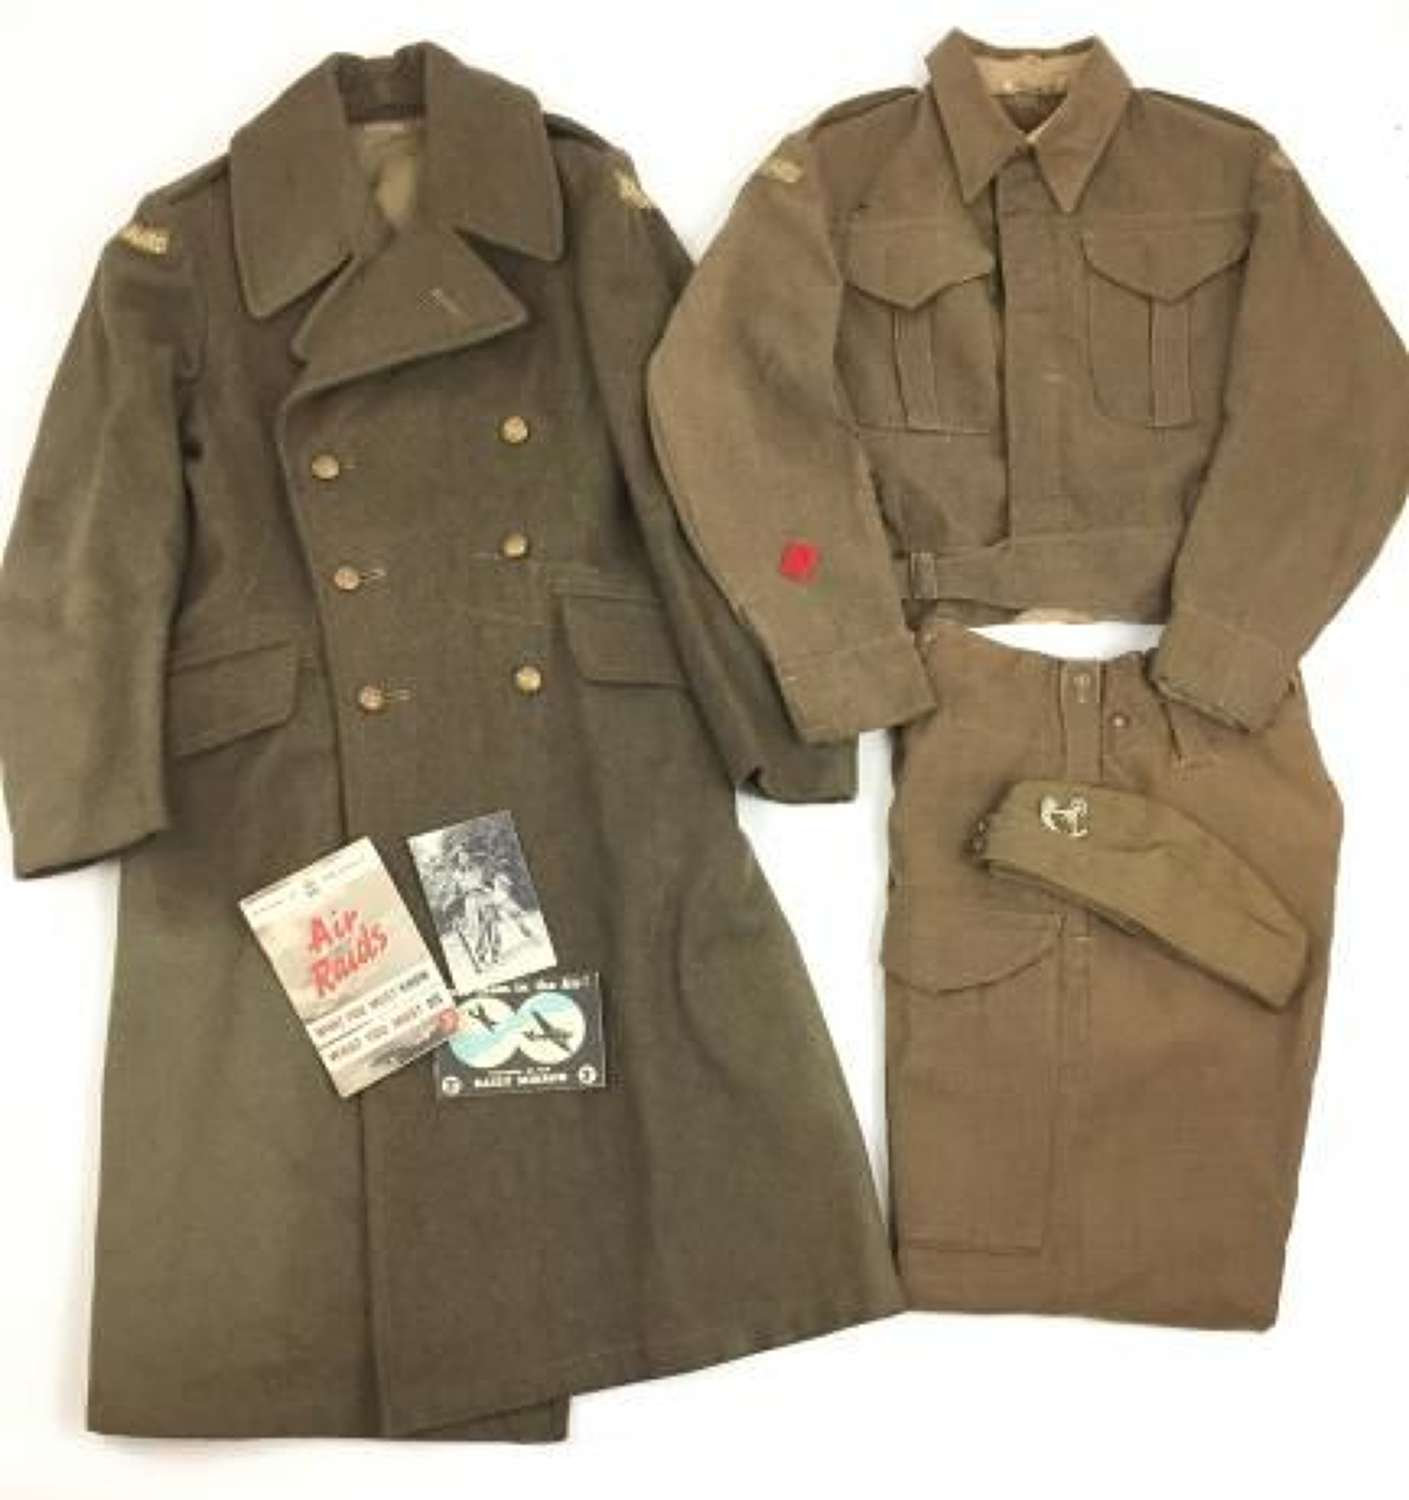 Click for more images Home Guard Unifrom Grouping Including Battledress, Greatcoat, Forage Cap and paperwork - Albrighton Home Guard